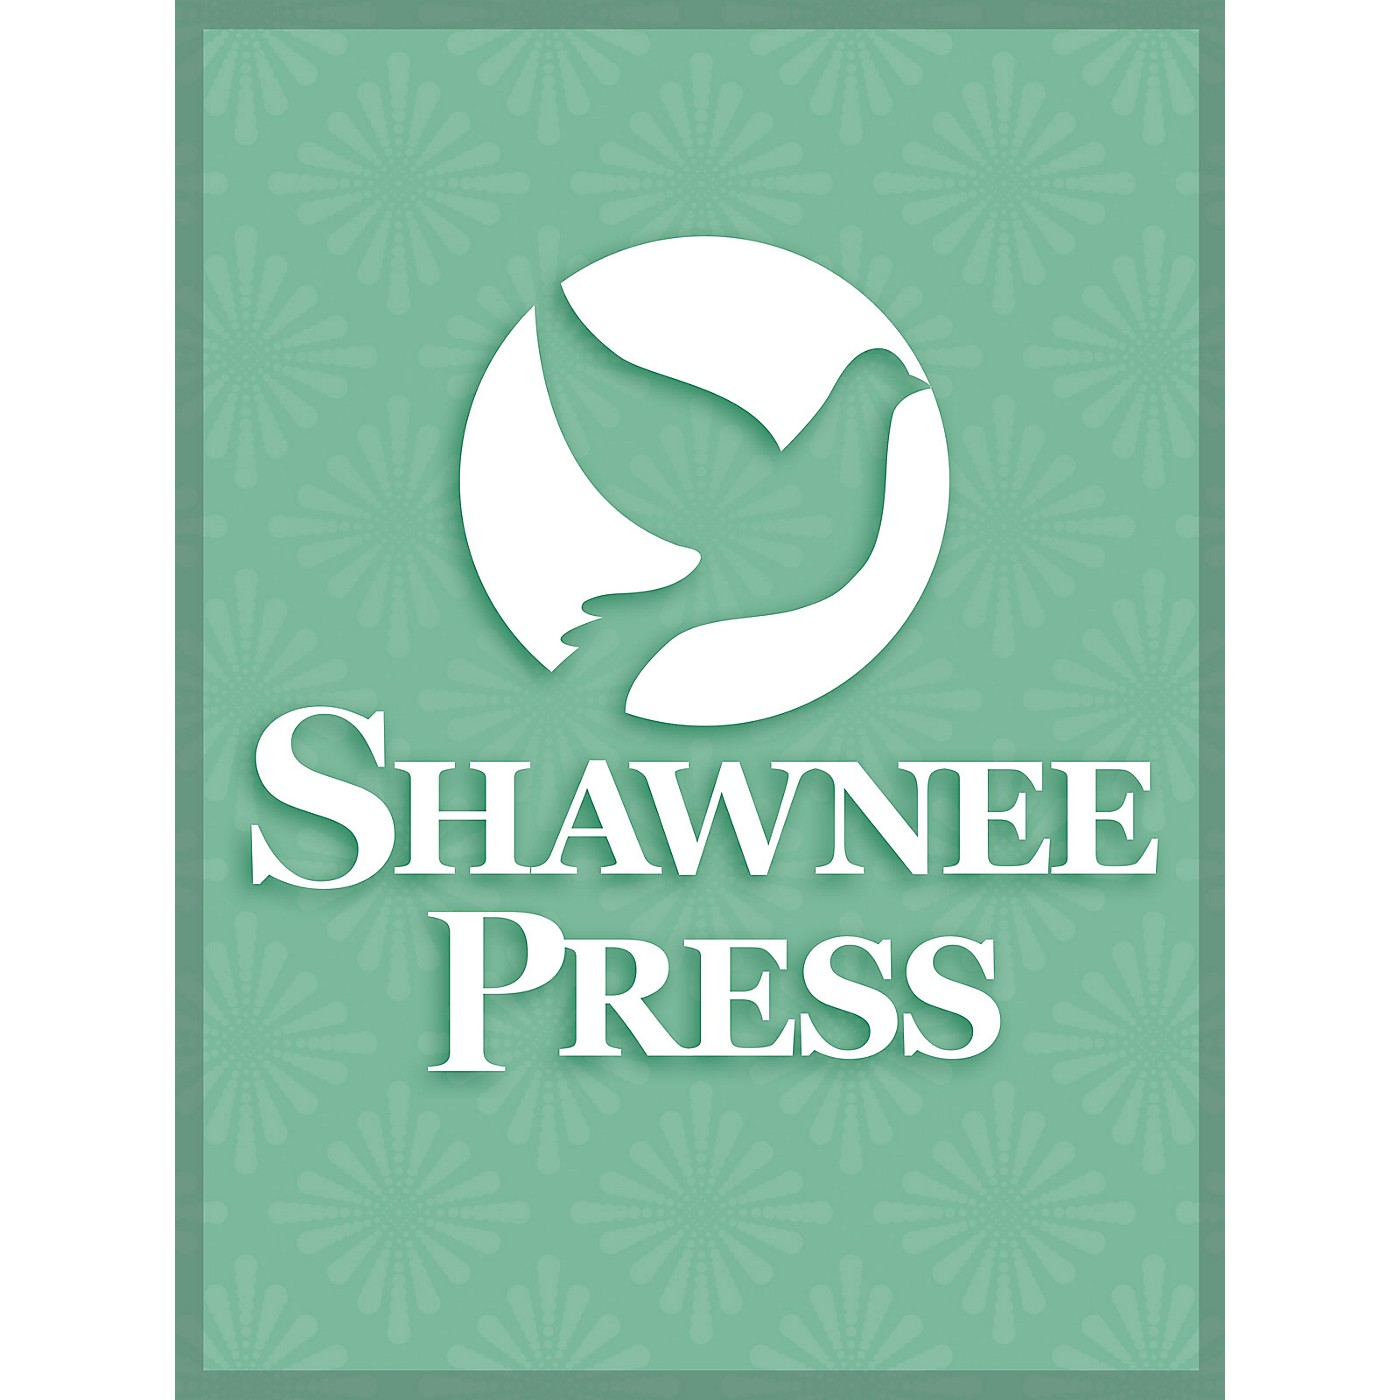 Shawnee Press Second Suite for French Horns Shawnee Press Series thumbnail